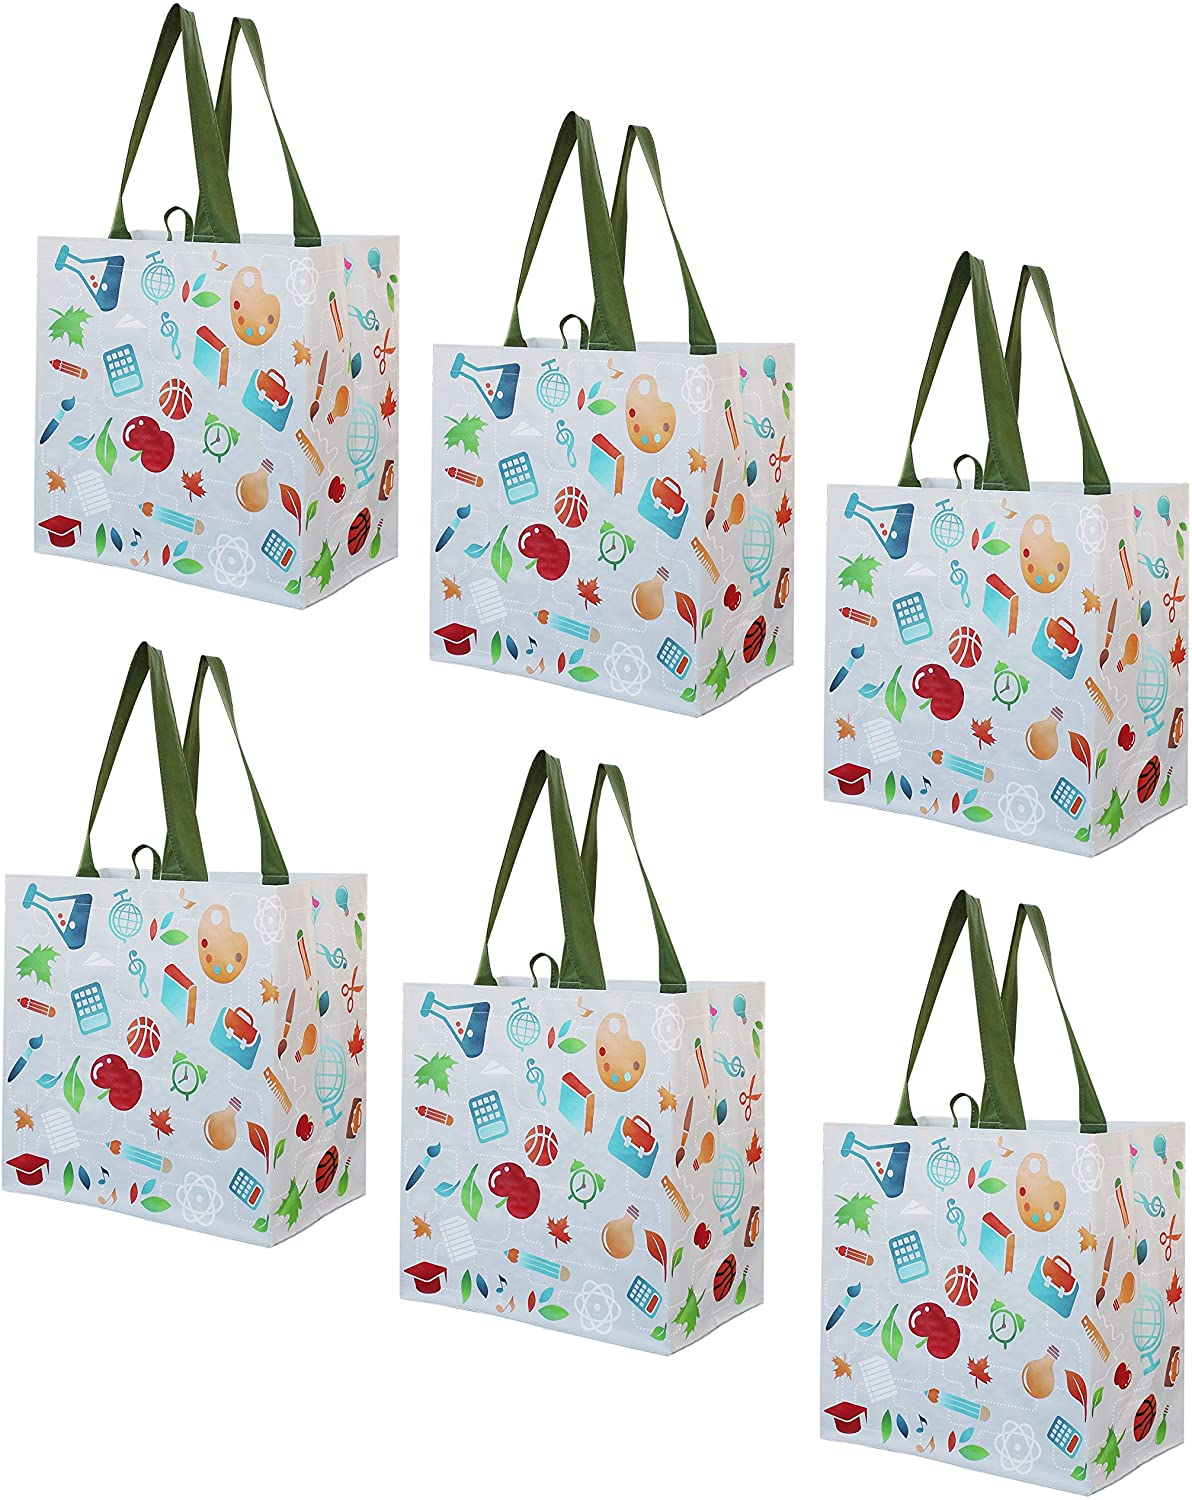 Earthwise Reusable Grocery Shopping Bags Extremely Durable Multi Use Large Stylish Fun Foldable Water-Resistant Totes Design - Back to School (Pack of 6)